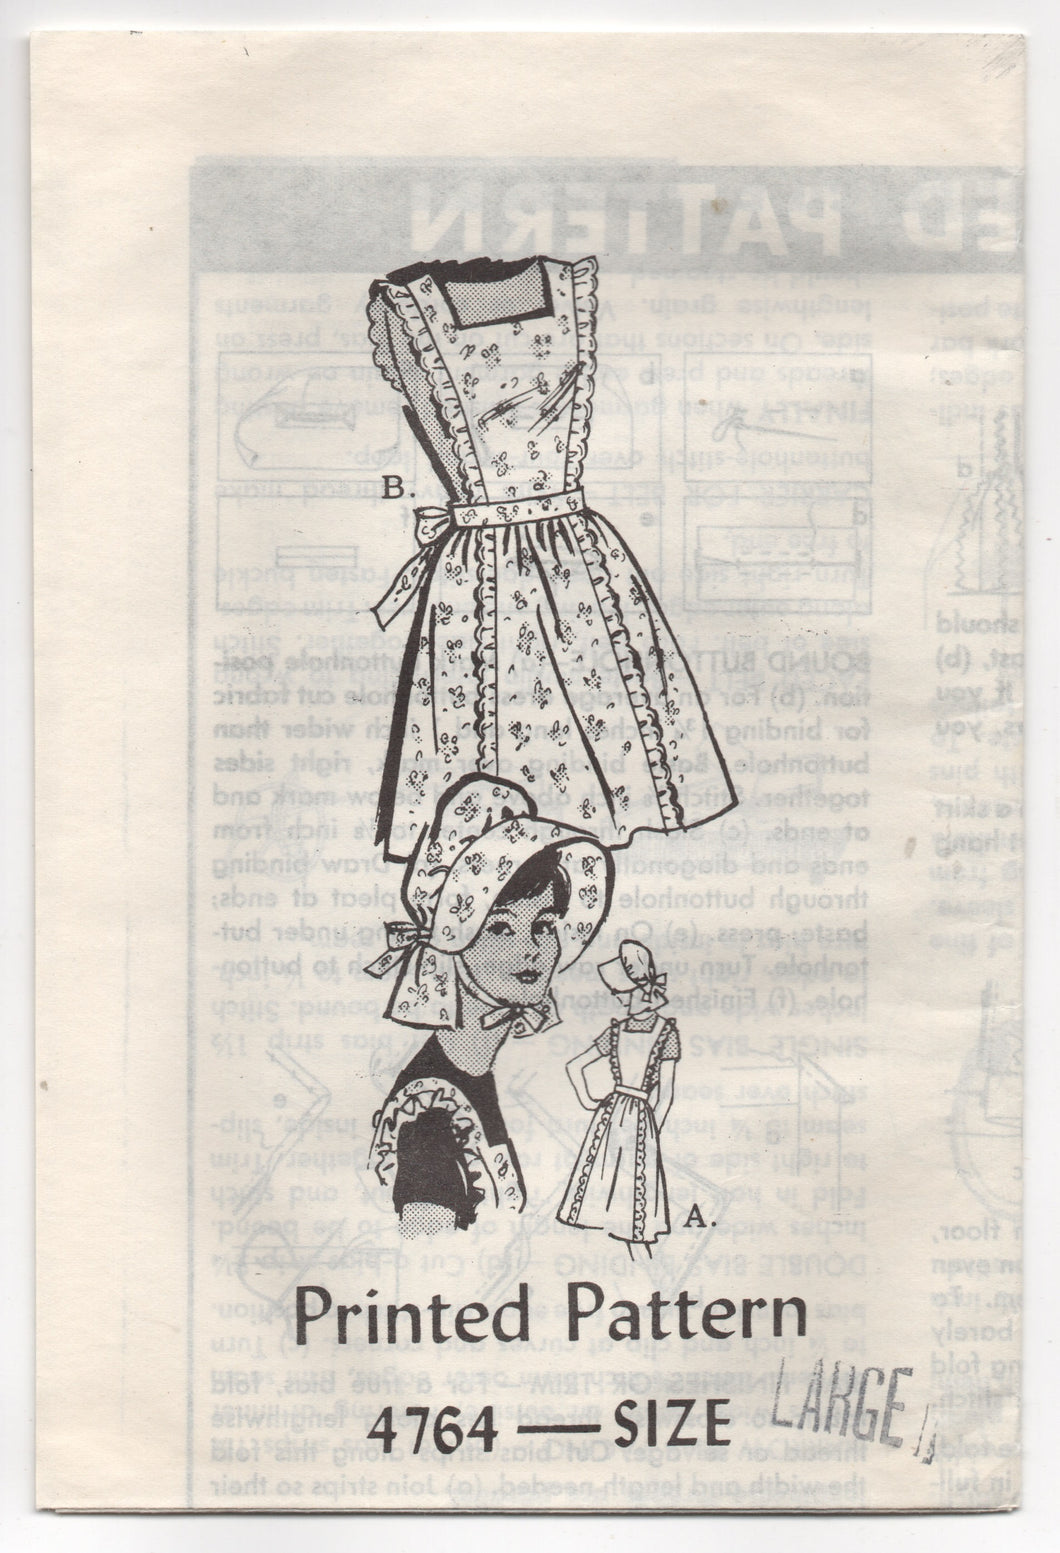 1960's Mail Order Full Apron and Bonnet Pattern - Bust 38-40